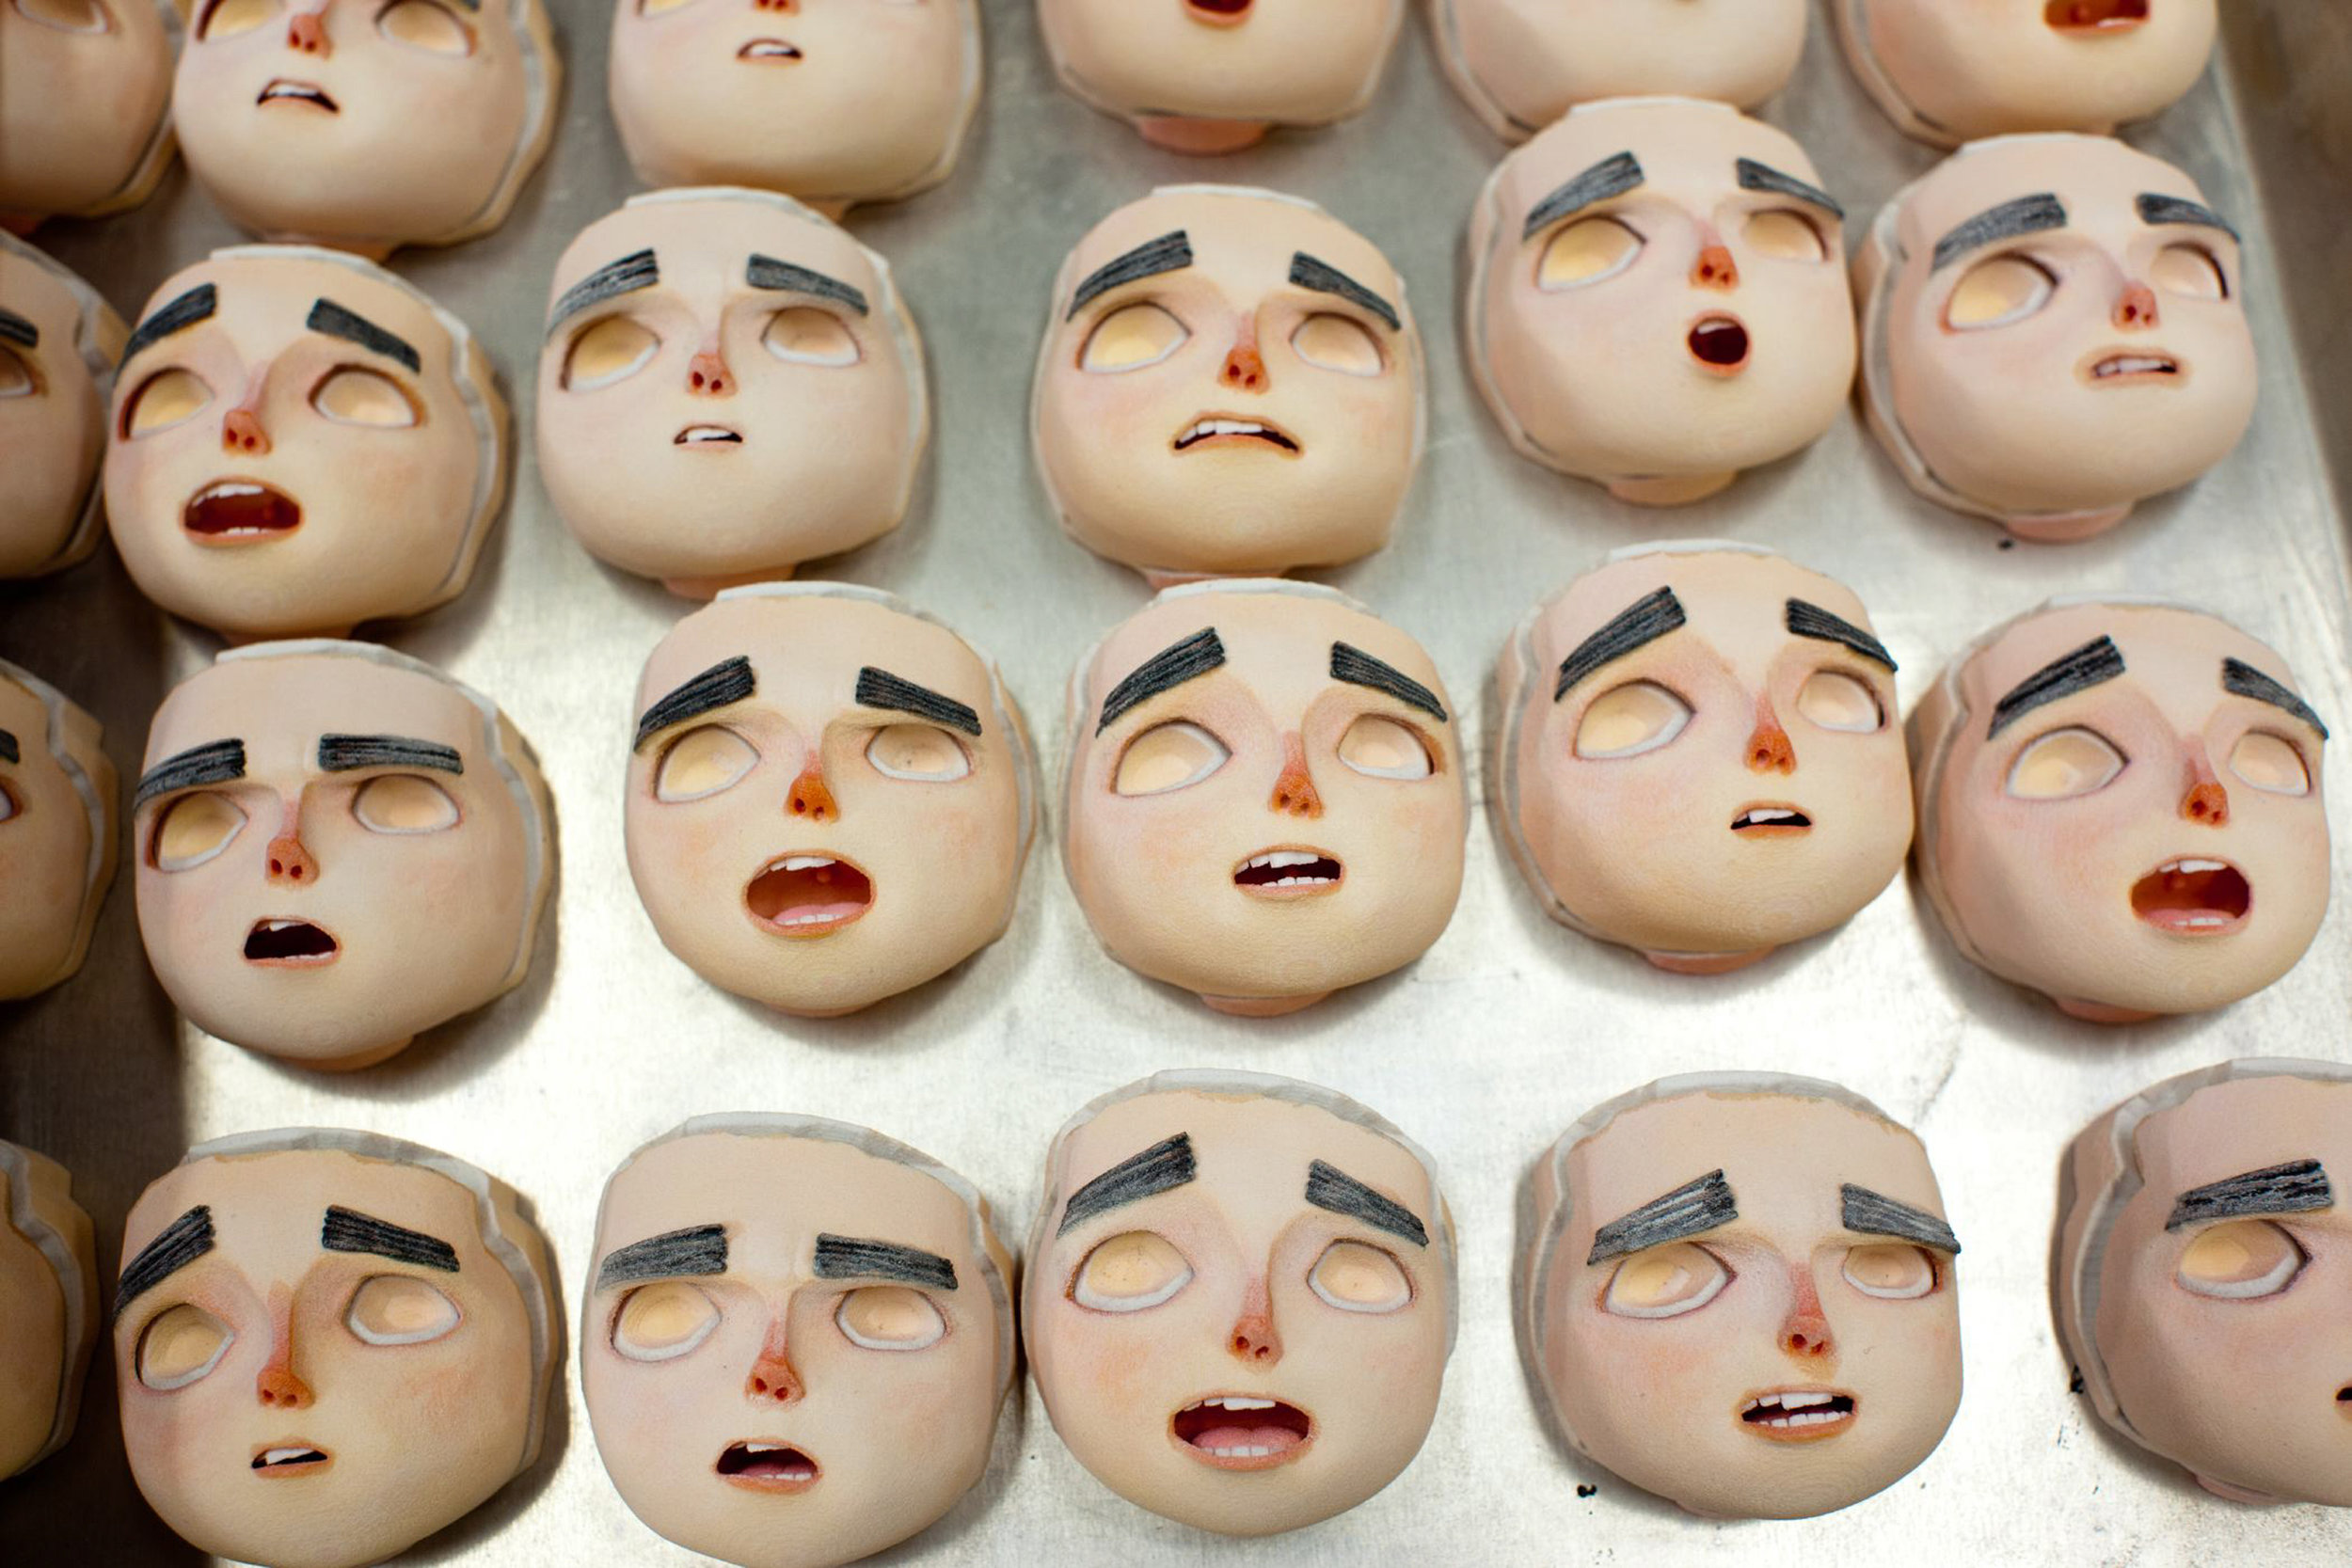 Once printed at LAIKA Studios, there are thousands of faces for animators to choose from for ParaNorman, the new 3D stop-motion comedy thriller.  Credit: LAIKA, Inc.